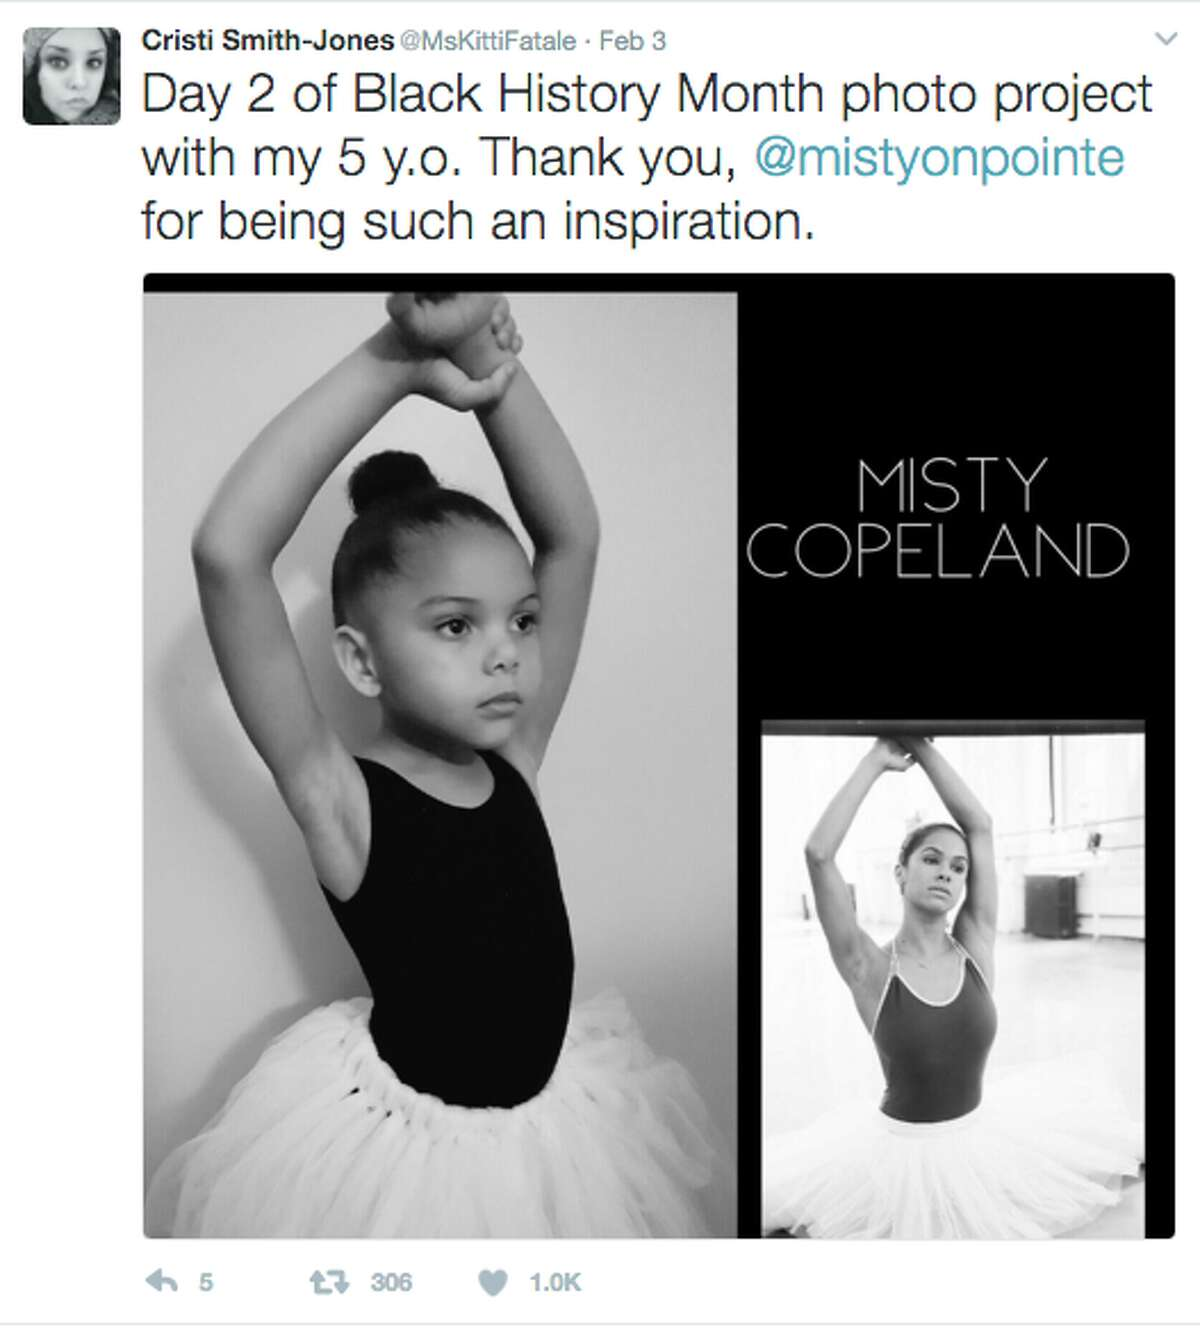 Seattle native Cristi Smith-Jones is dressing up her five-year-old daughter, Lola, as iconic black women in celebration of Black History Month.